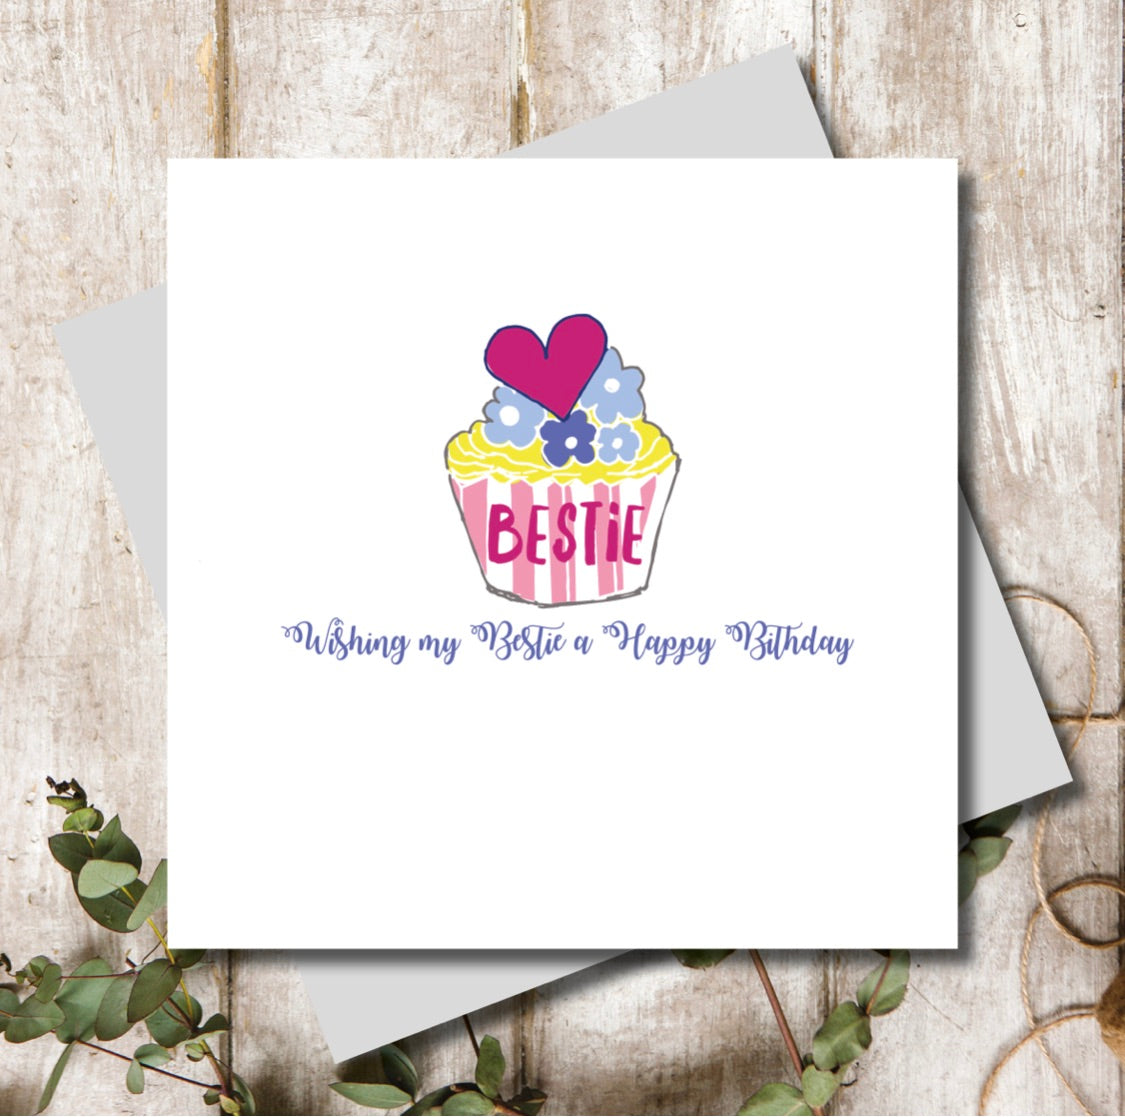 Bestie Cup Cake Birthday Card | Gift Pop Boutique